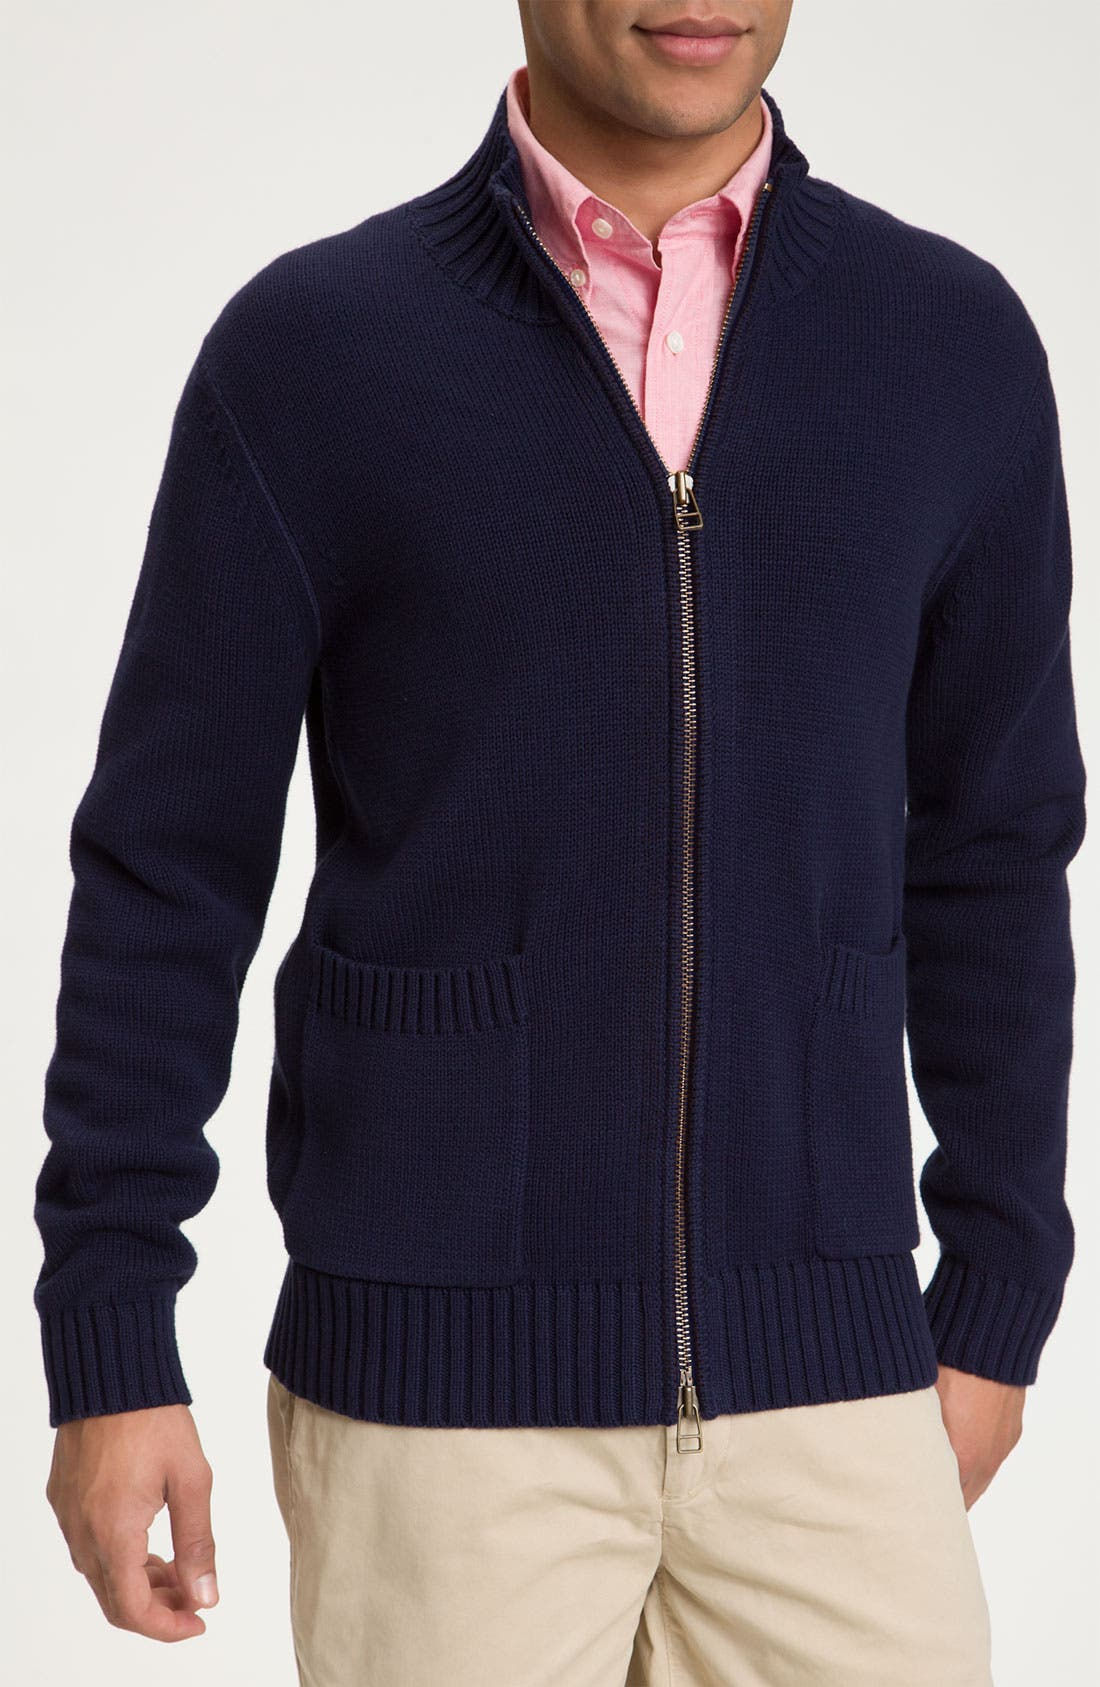 Main Image - Jack Spade 'Mookie' Zip Sweater